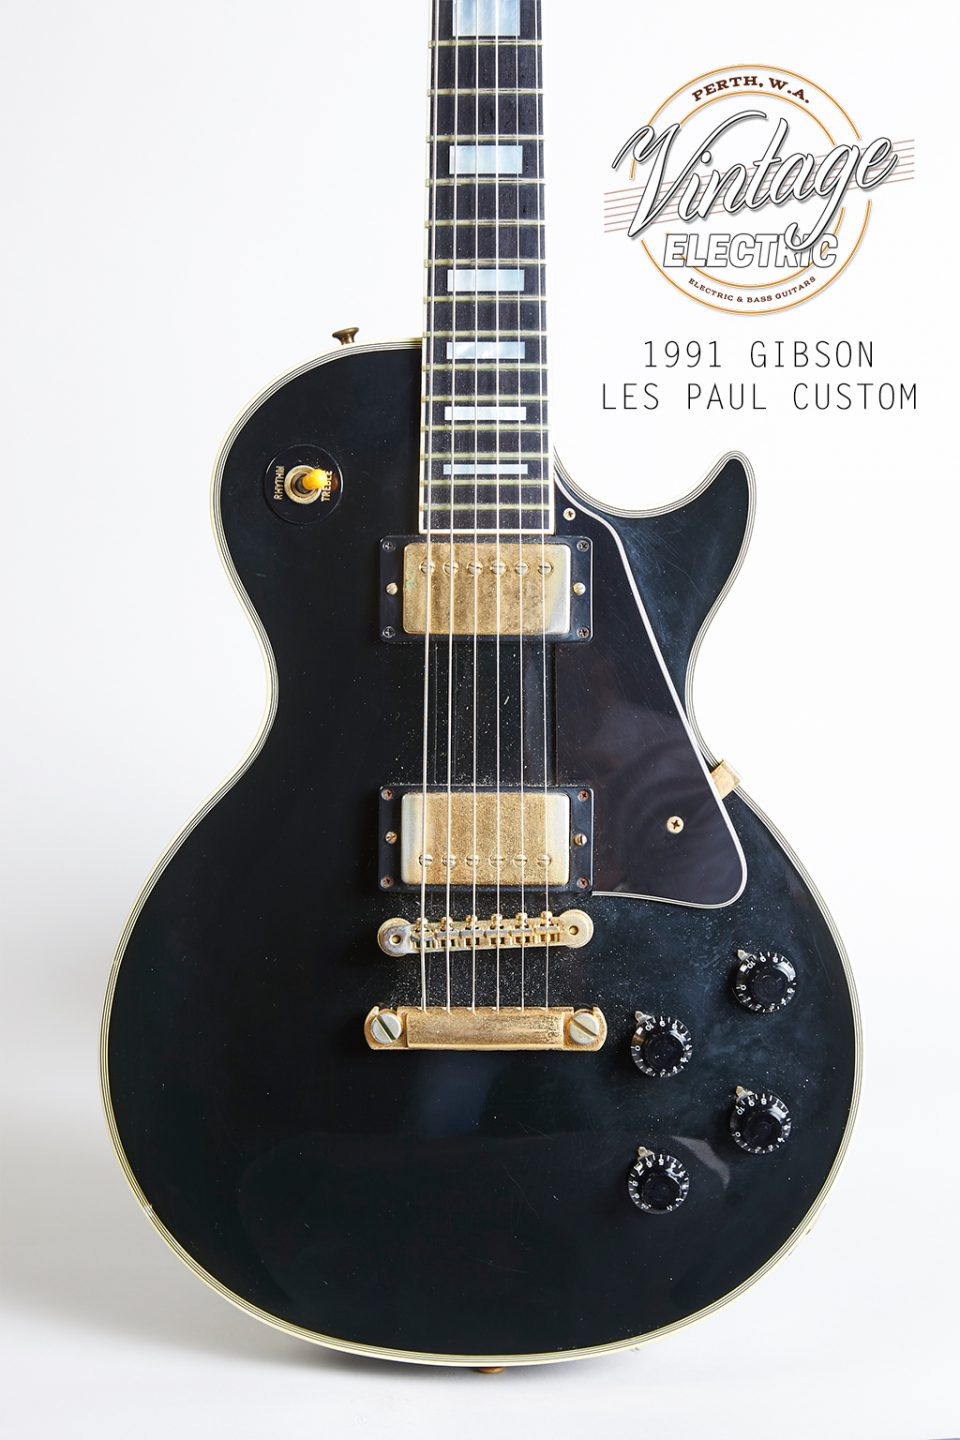 1991 Gibson Les Paul Custom Black Beauty Body